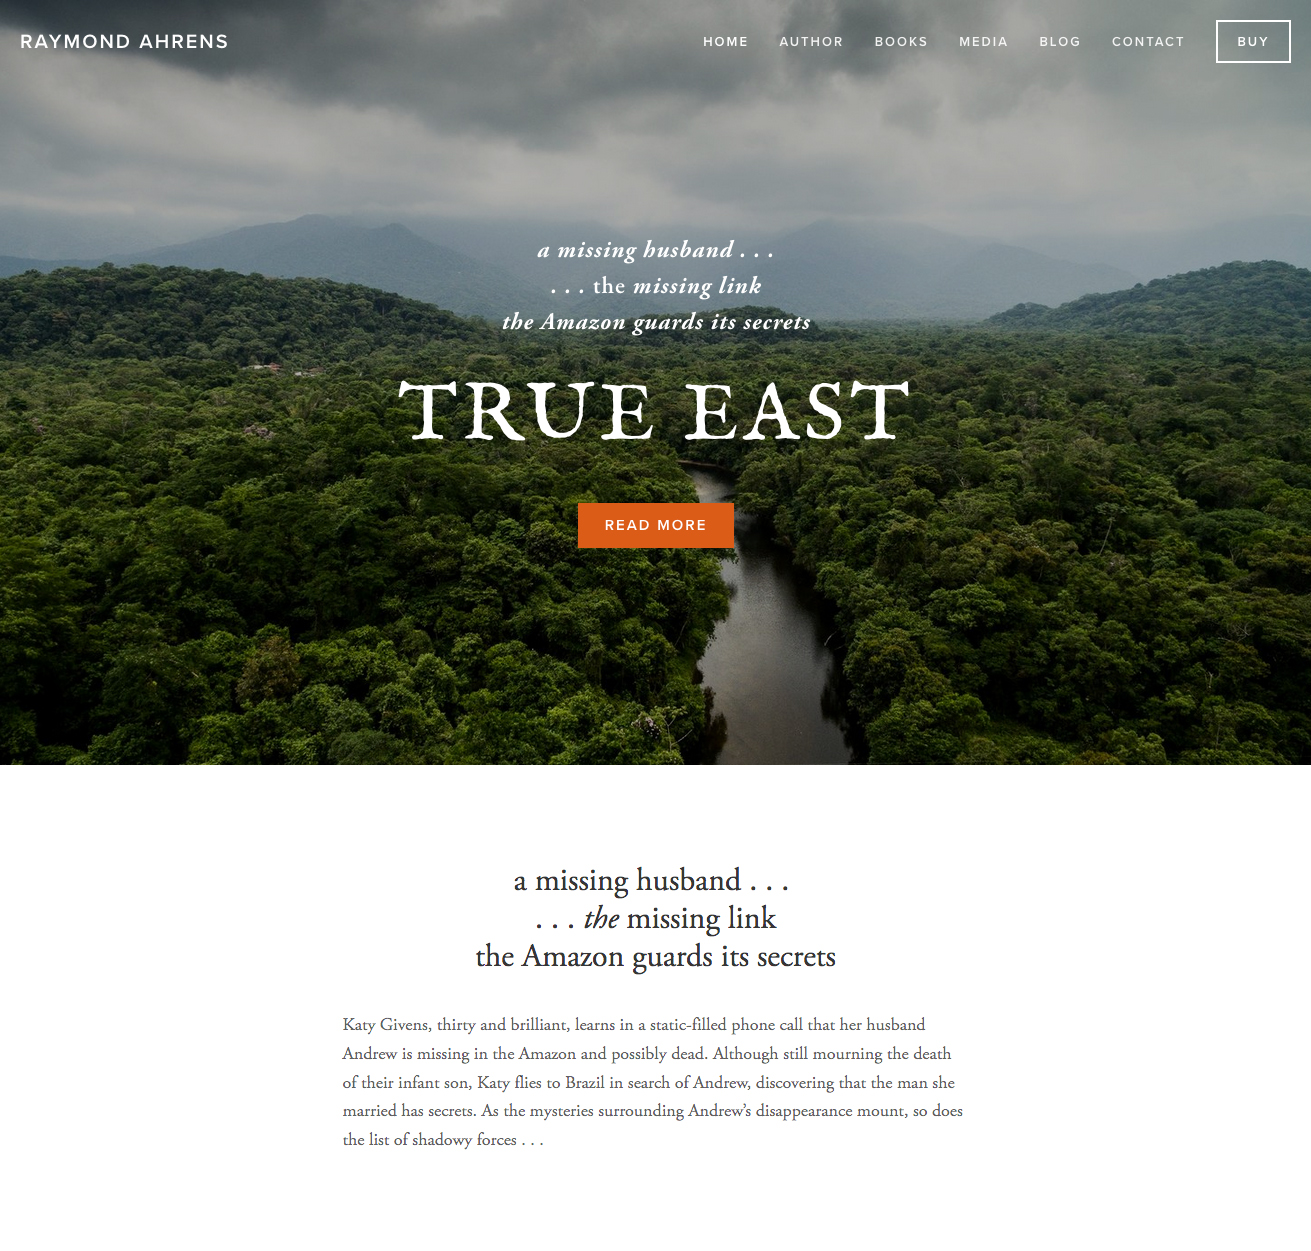 Website for Raymond Ahrens, author of True East and Drive